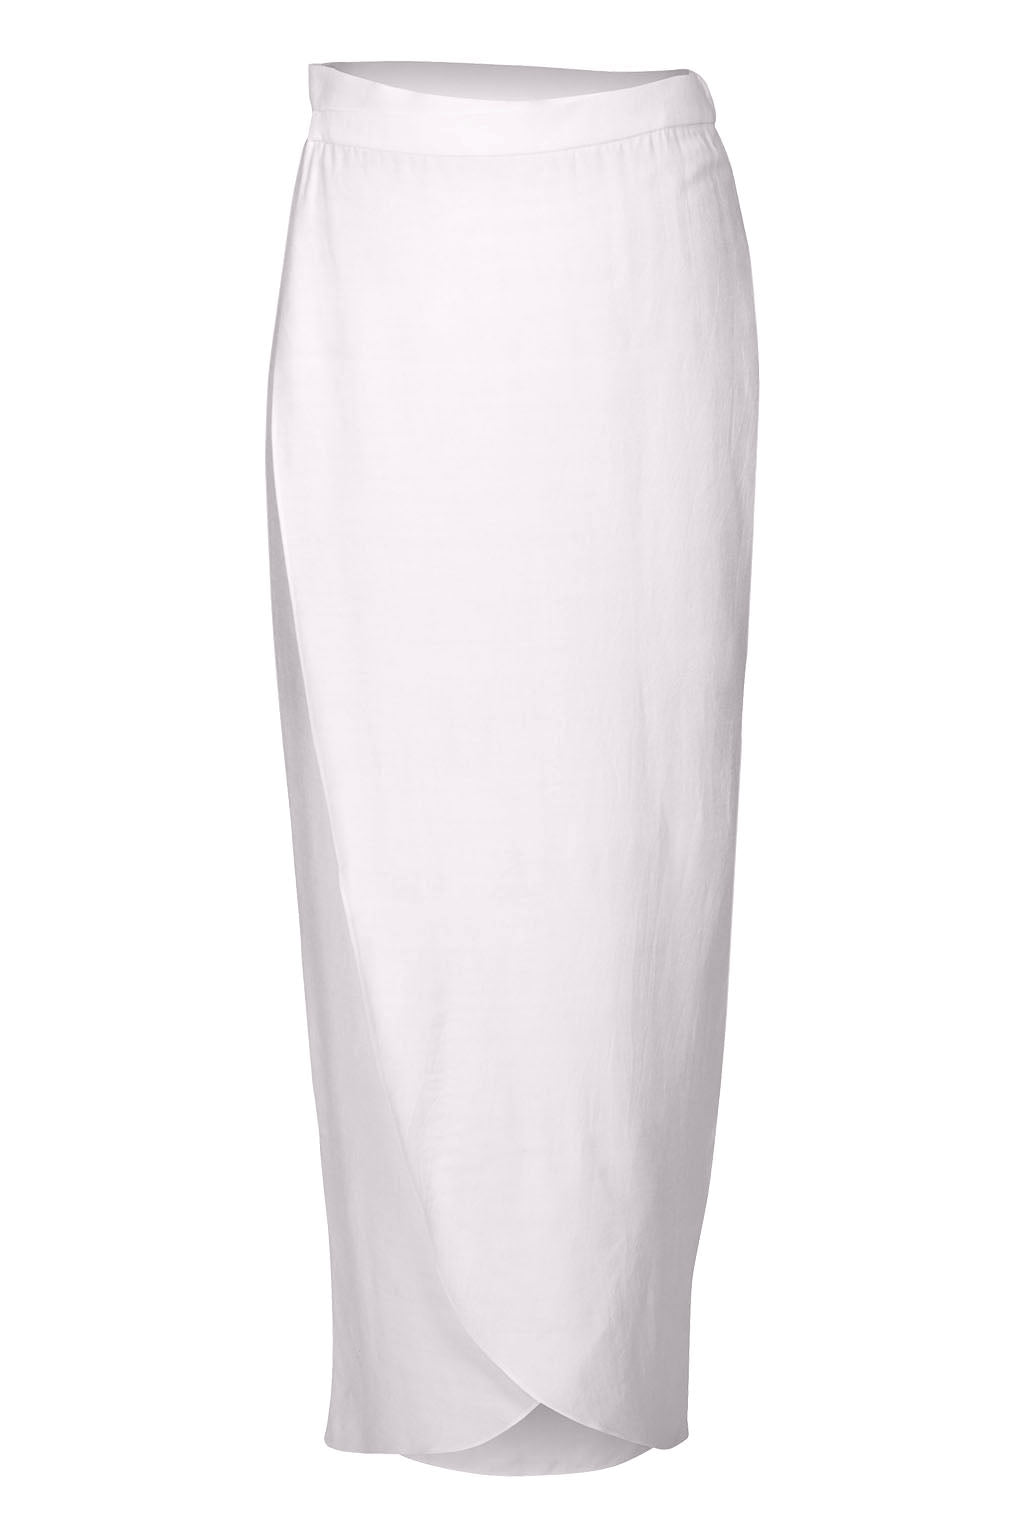 Yin Skirt ghost mannequin front